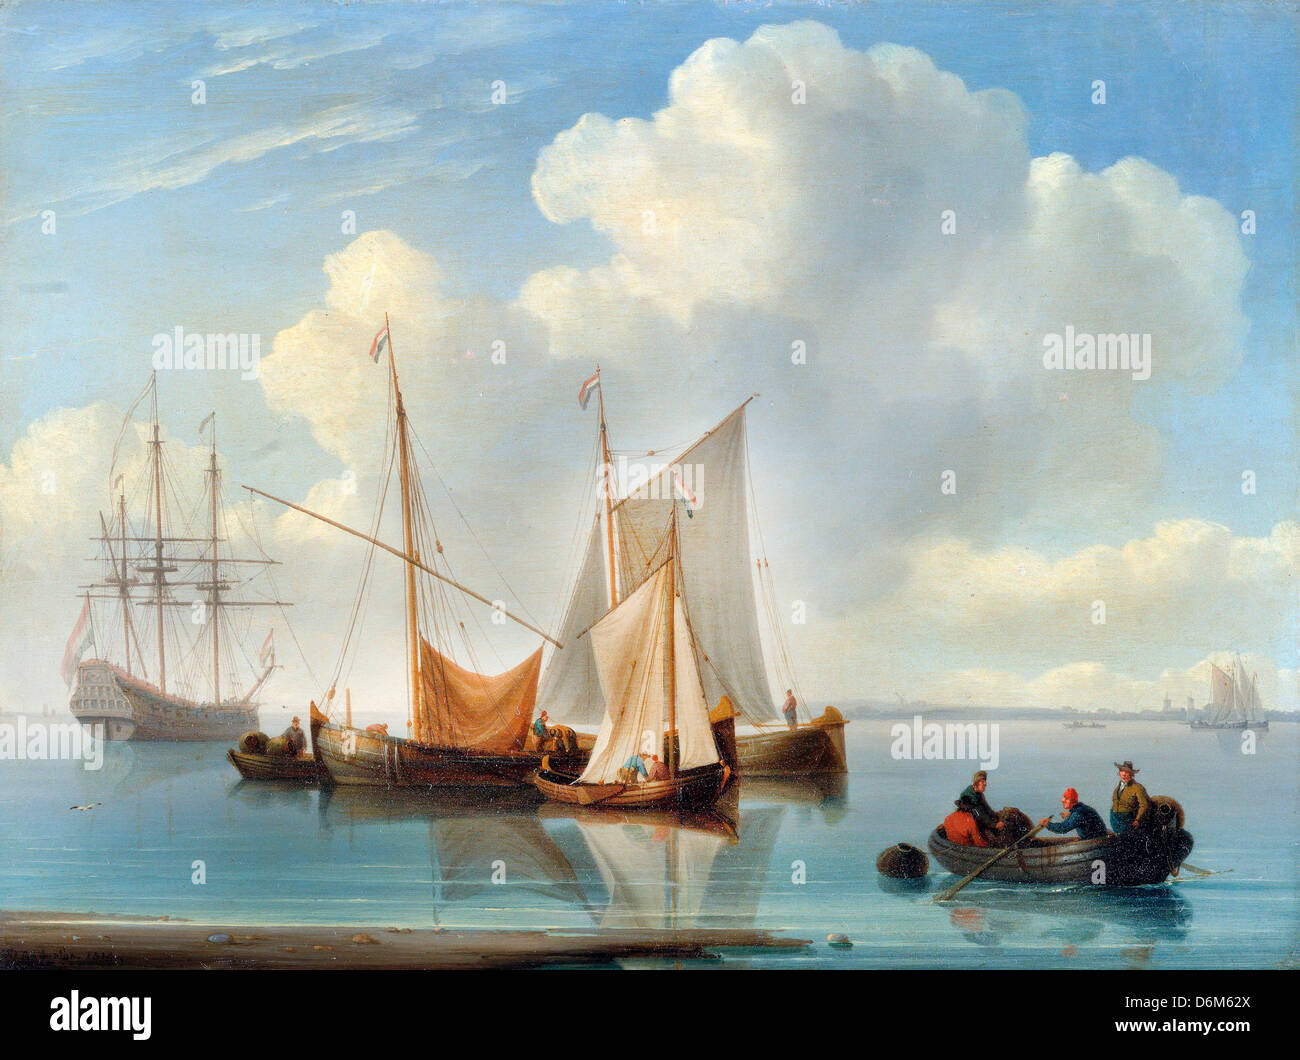 William Anderson, Dutch Sailing Vessels 1814 Oil on panel. Yale Center for British Art, Haven, Connecticut, USA - Stock Image